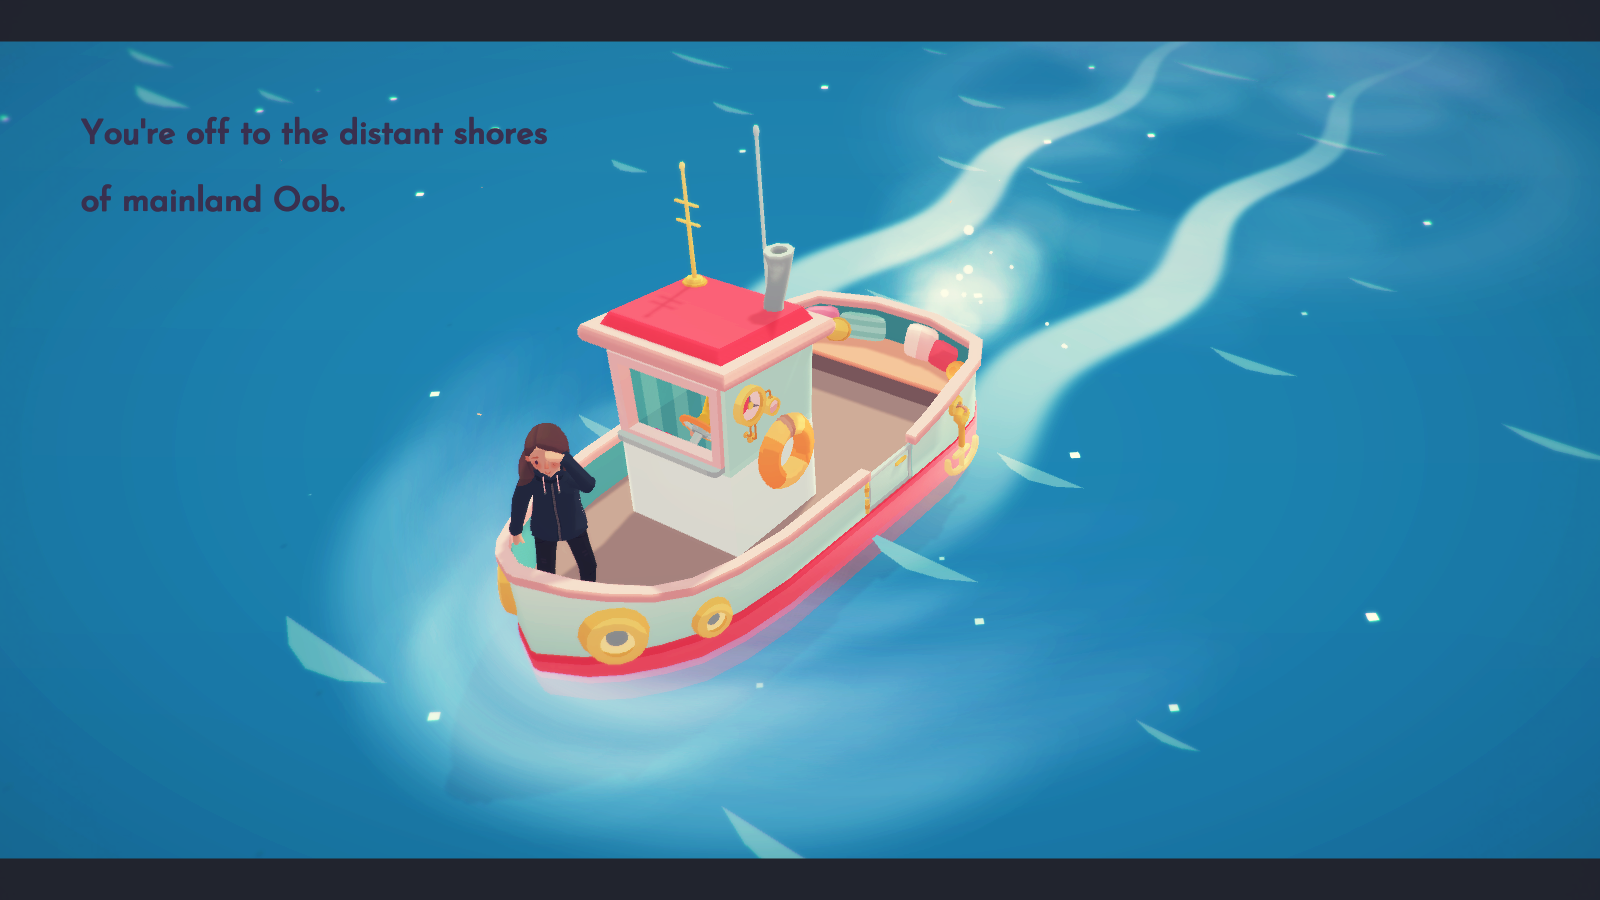 The boat leaves for Oob